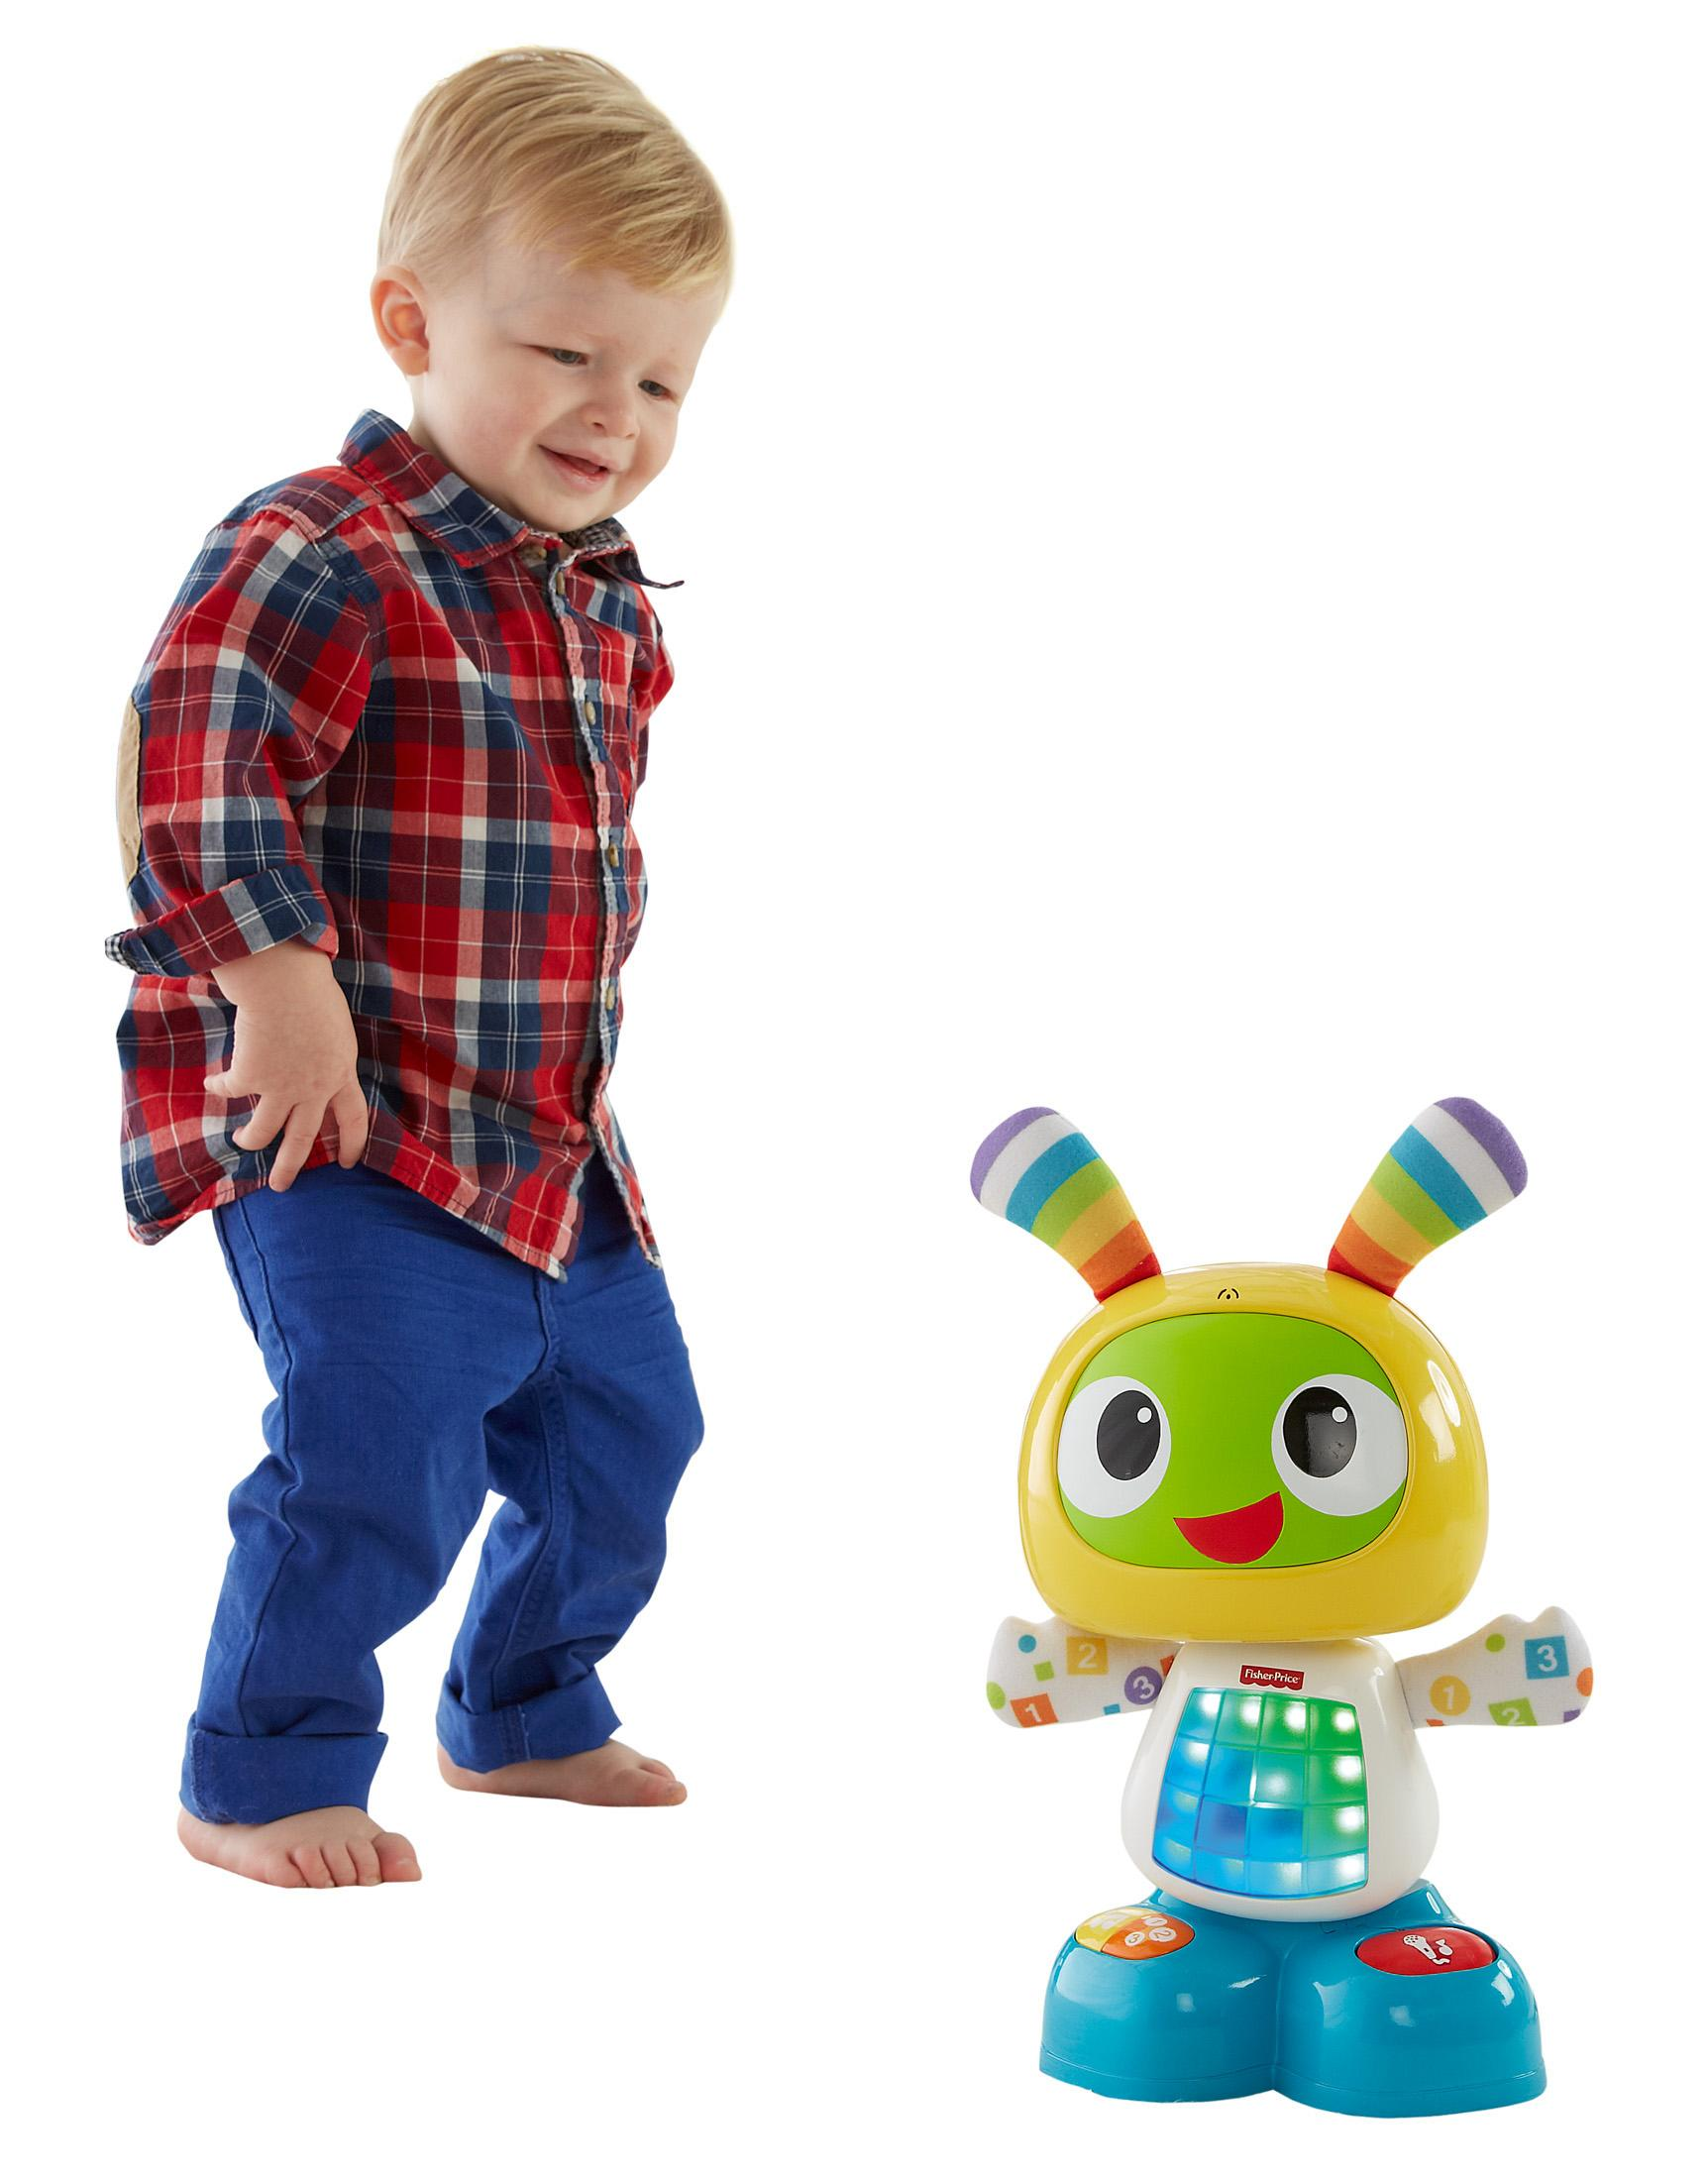 Toys For Dance : Fisher price toys baby dance move musical sound activity